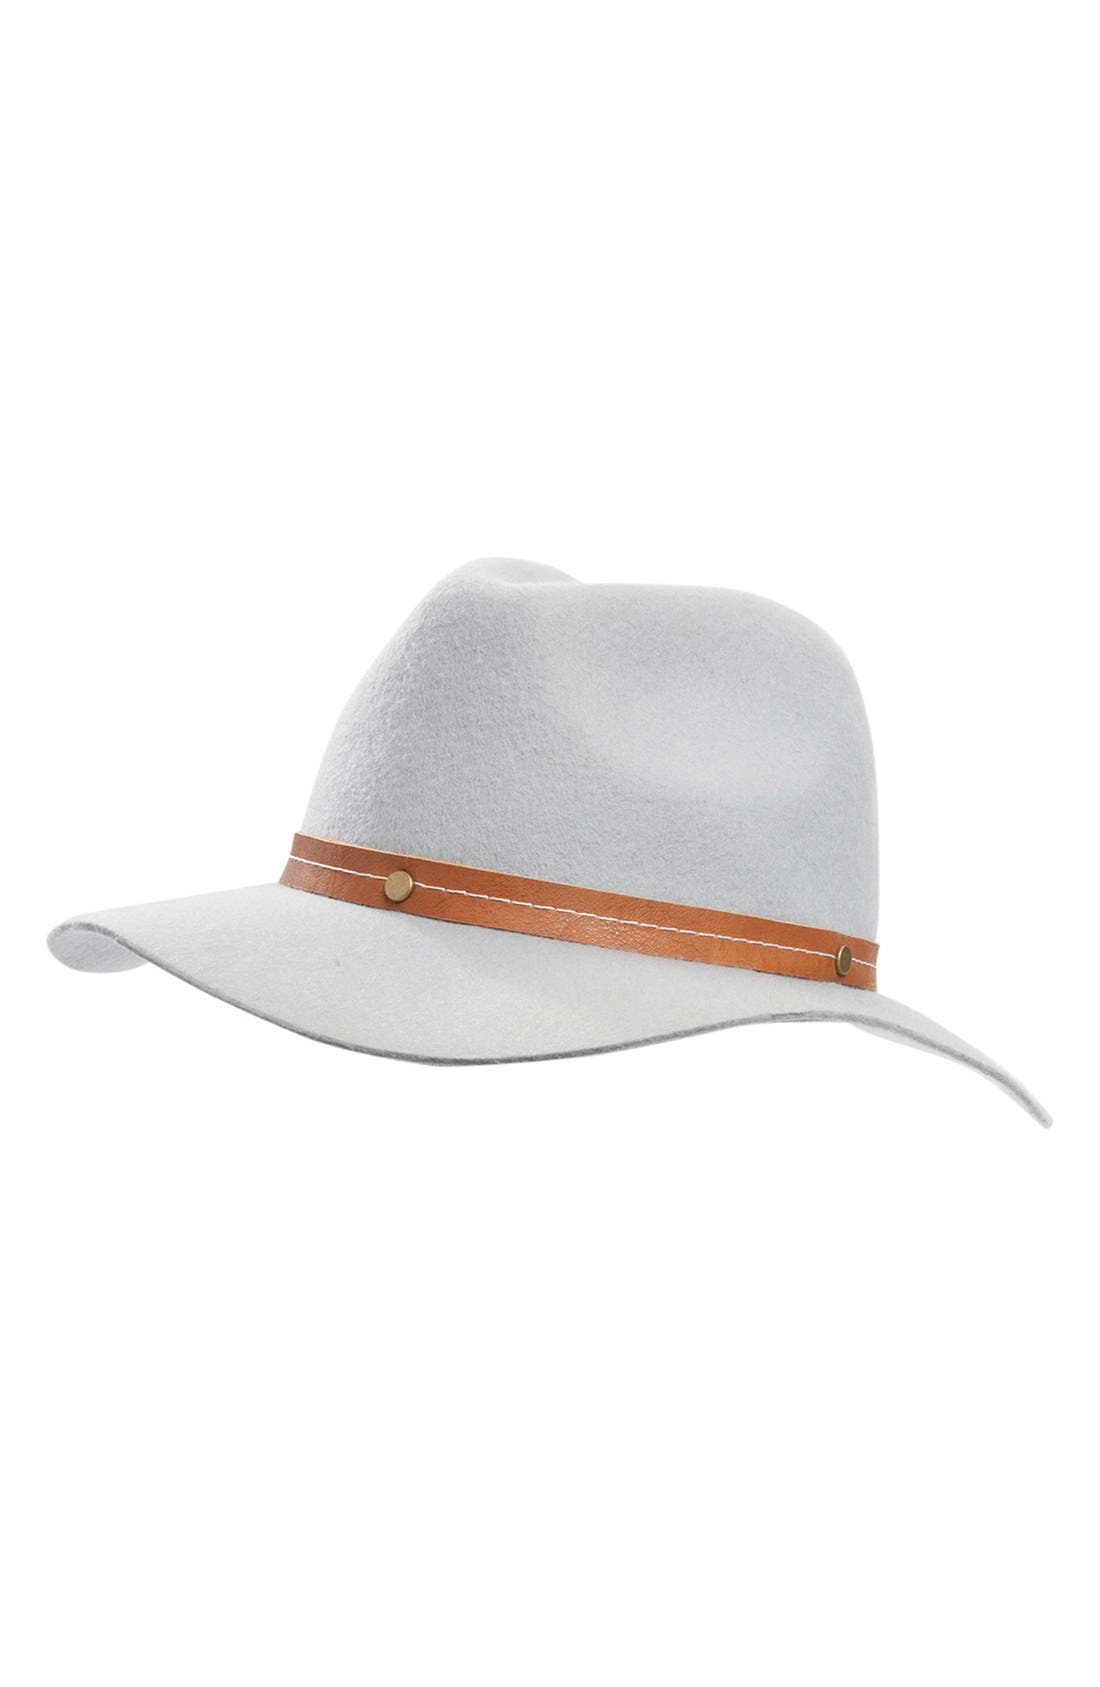 Alternate Image 3  - Billabong 'Moon Gaze' Wool Panama Hat